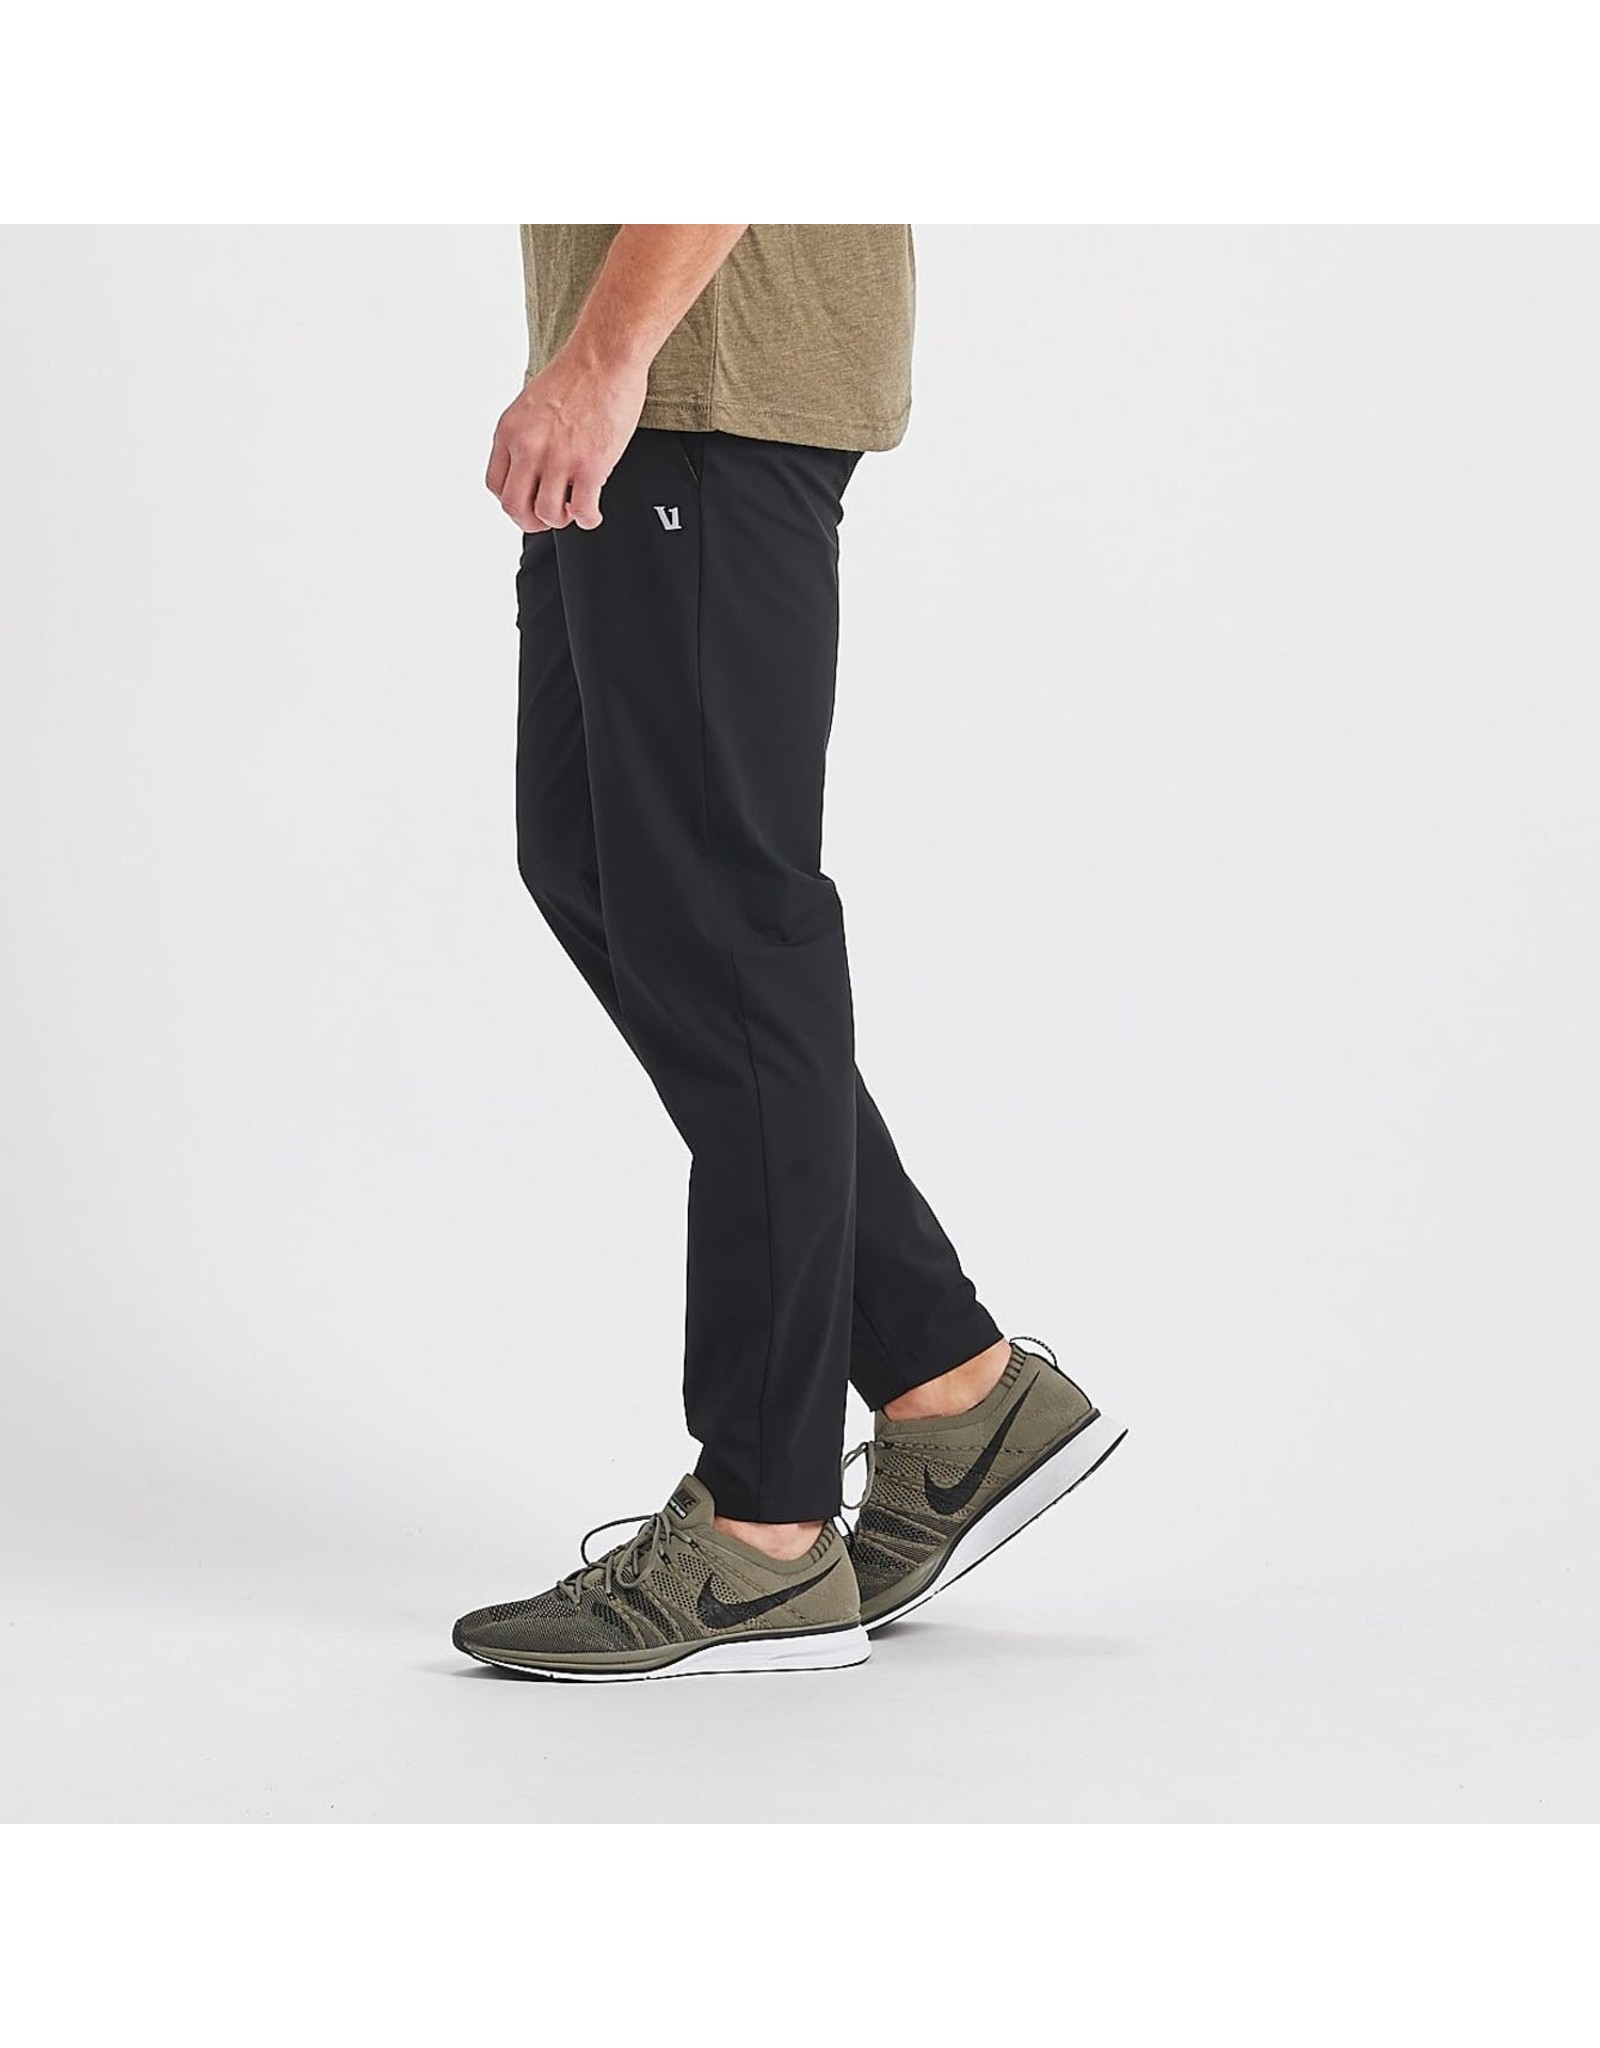 VUORI MEN'S VUORI FLEET PANT-BLACK